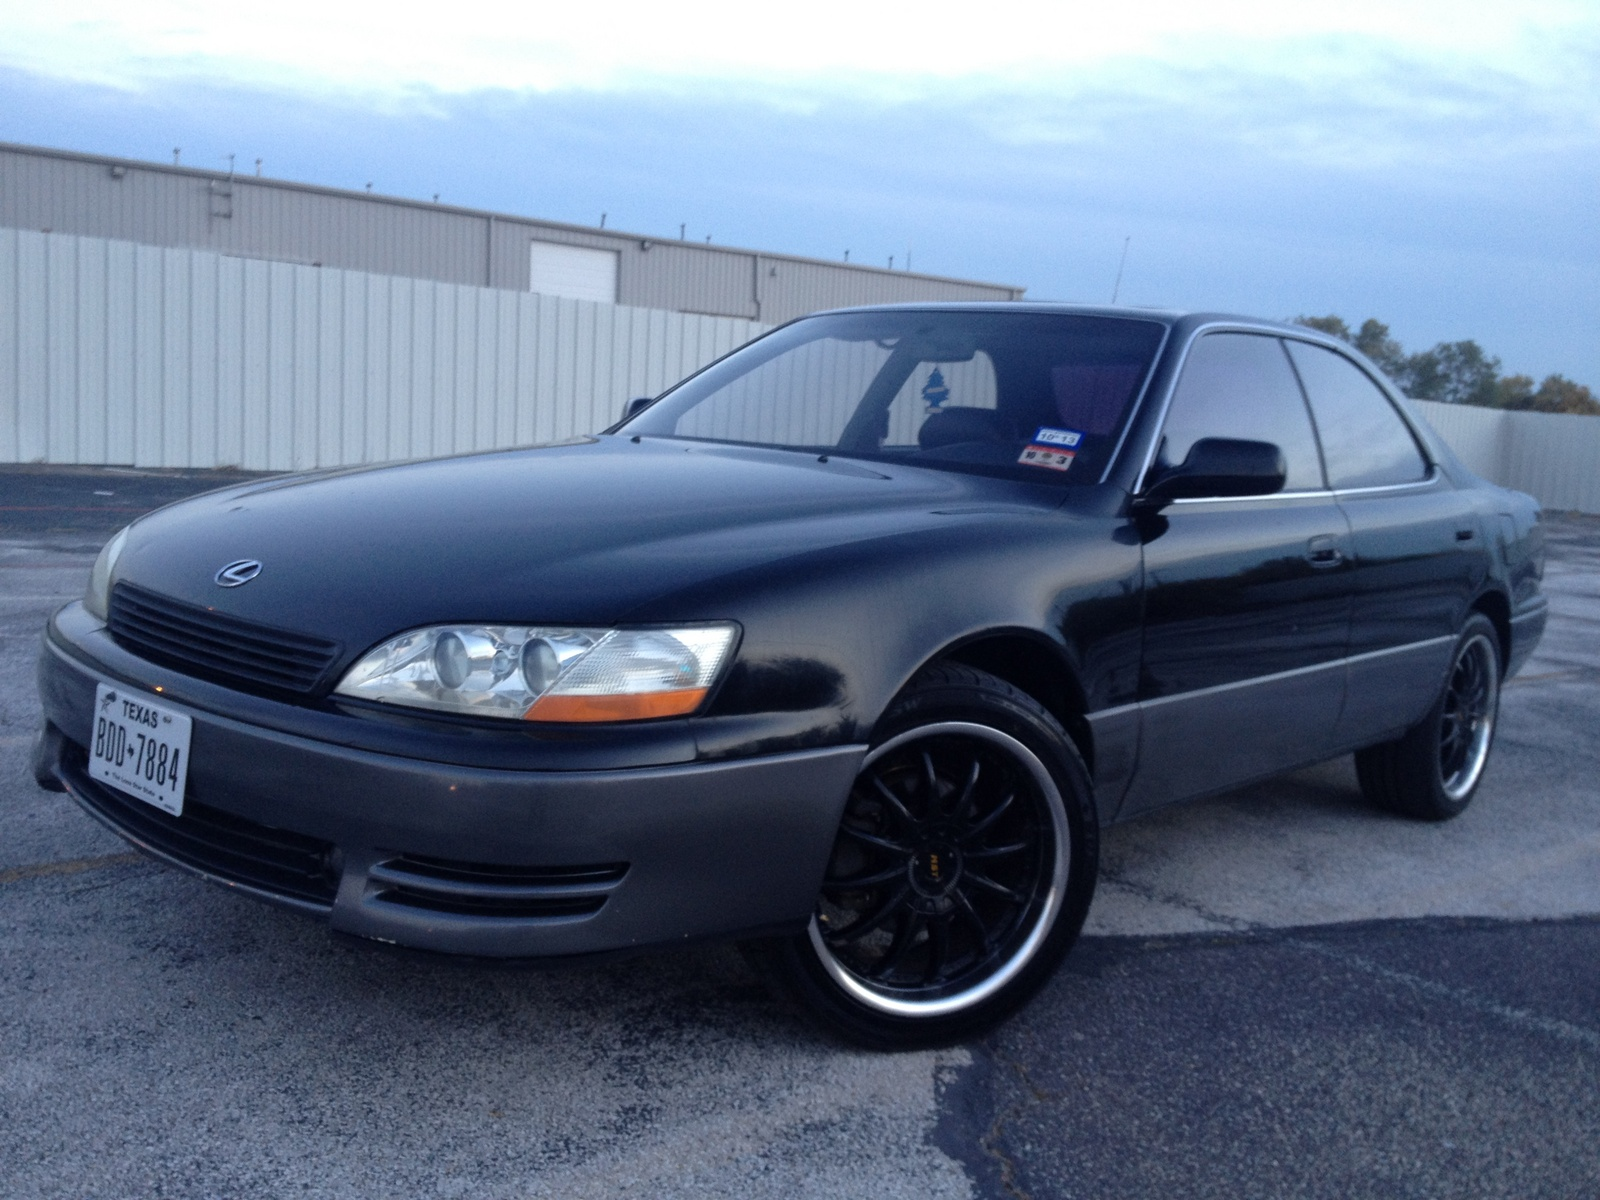 Lexus ES 300 1994 photo - 3